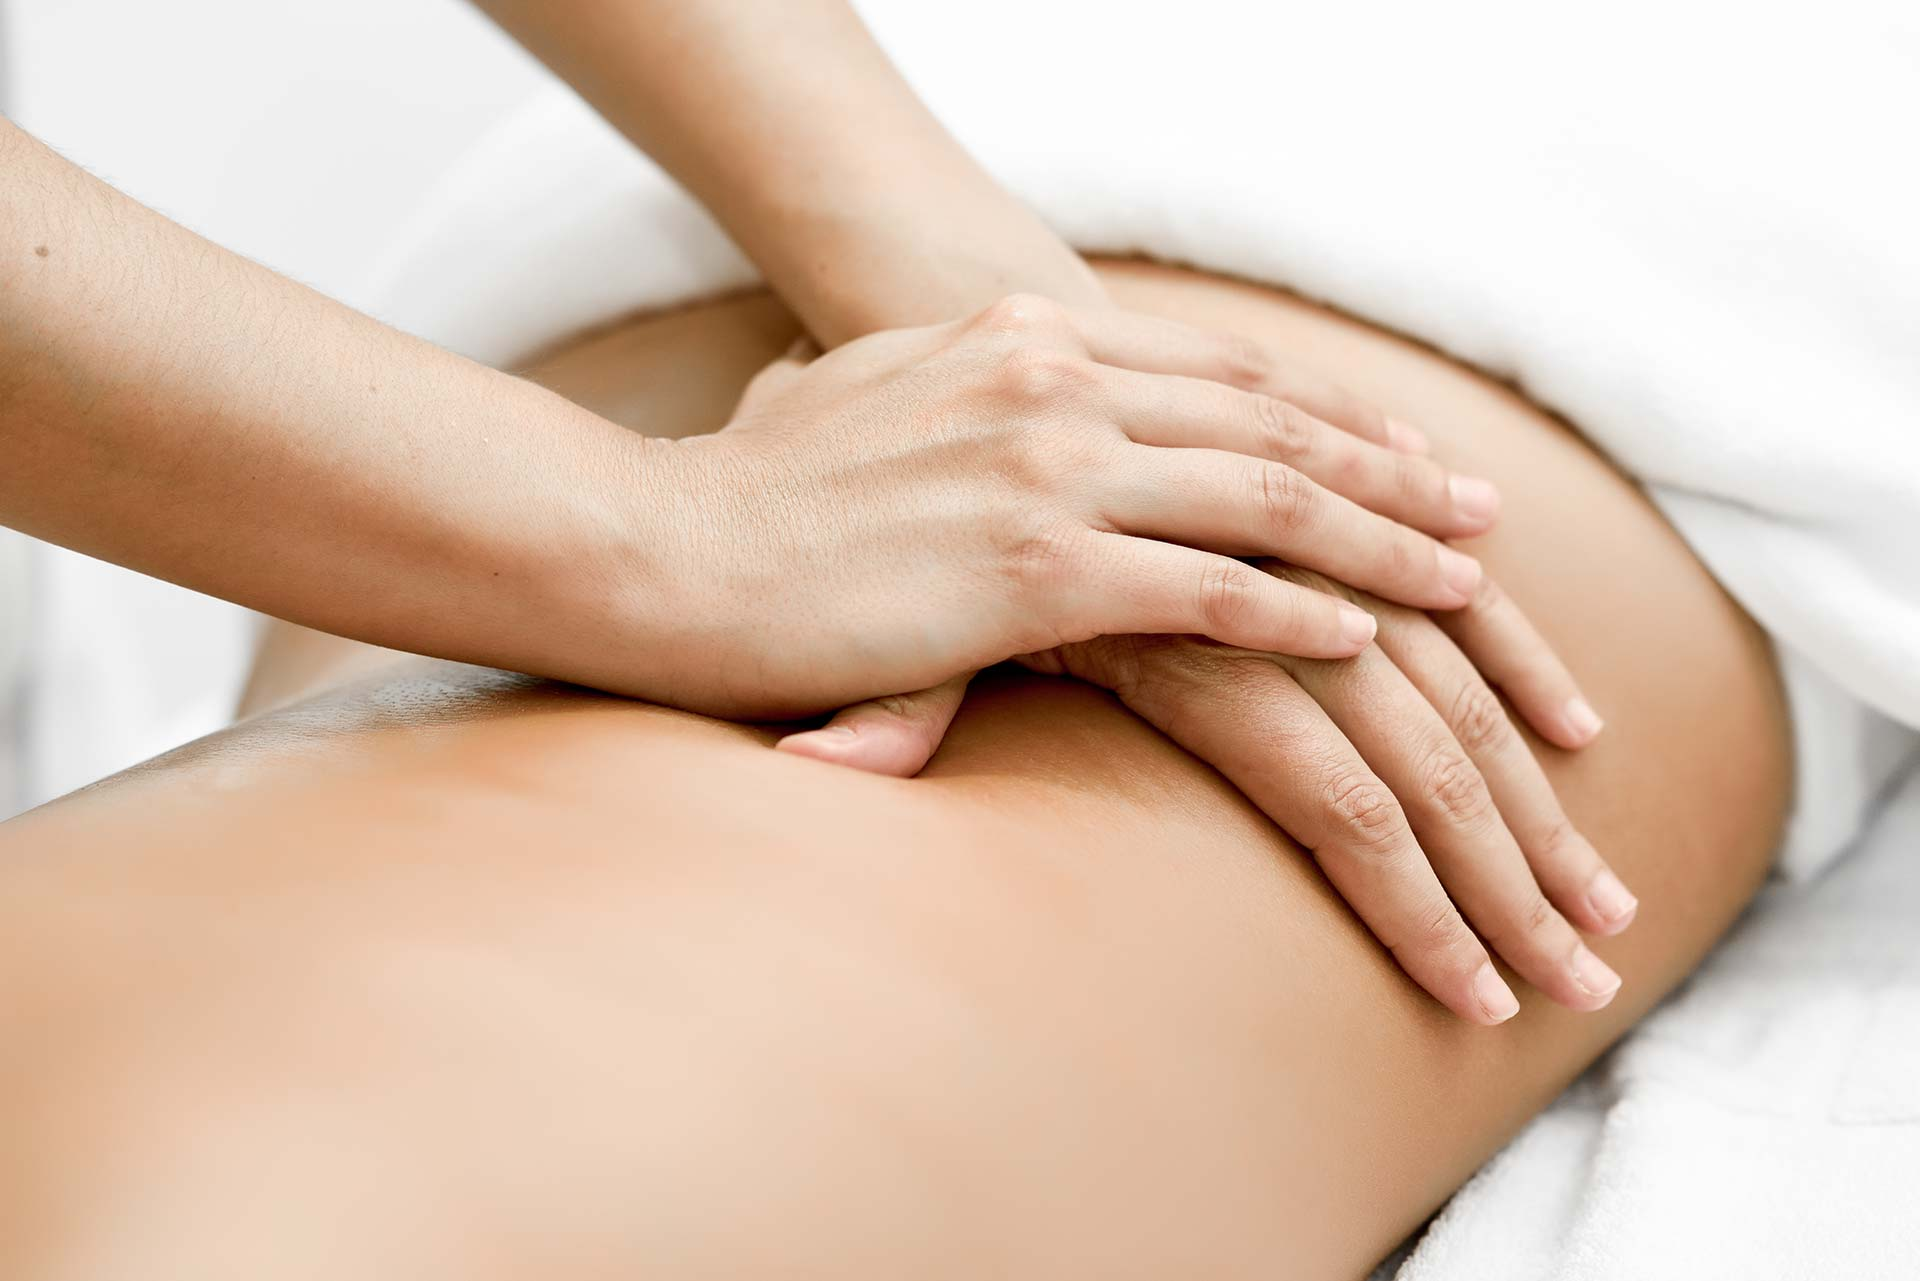 Massage Therapy and Improving Circulation